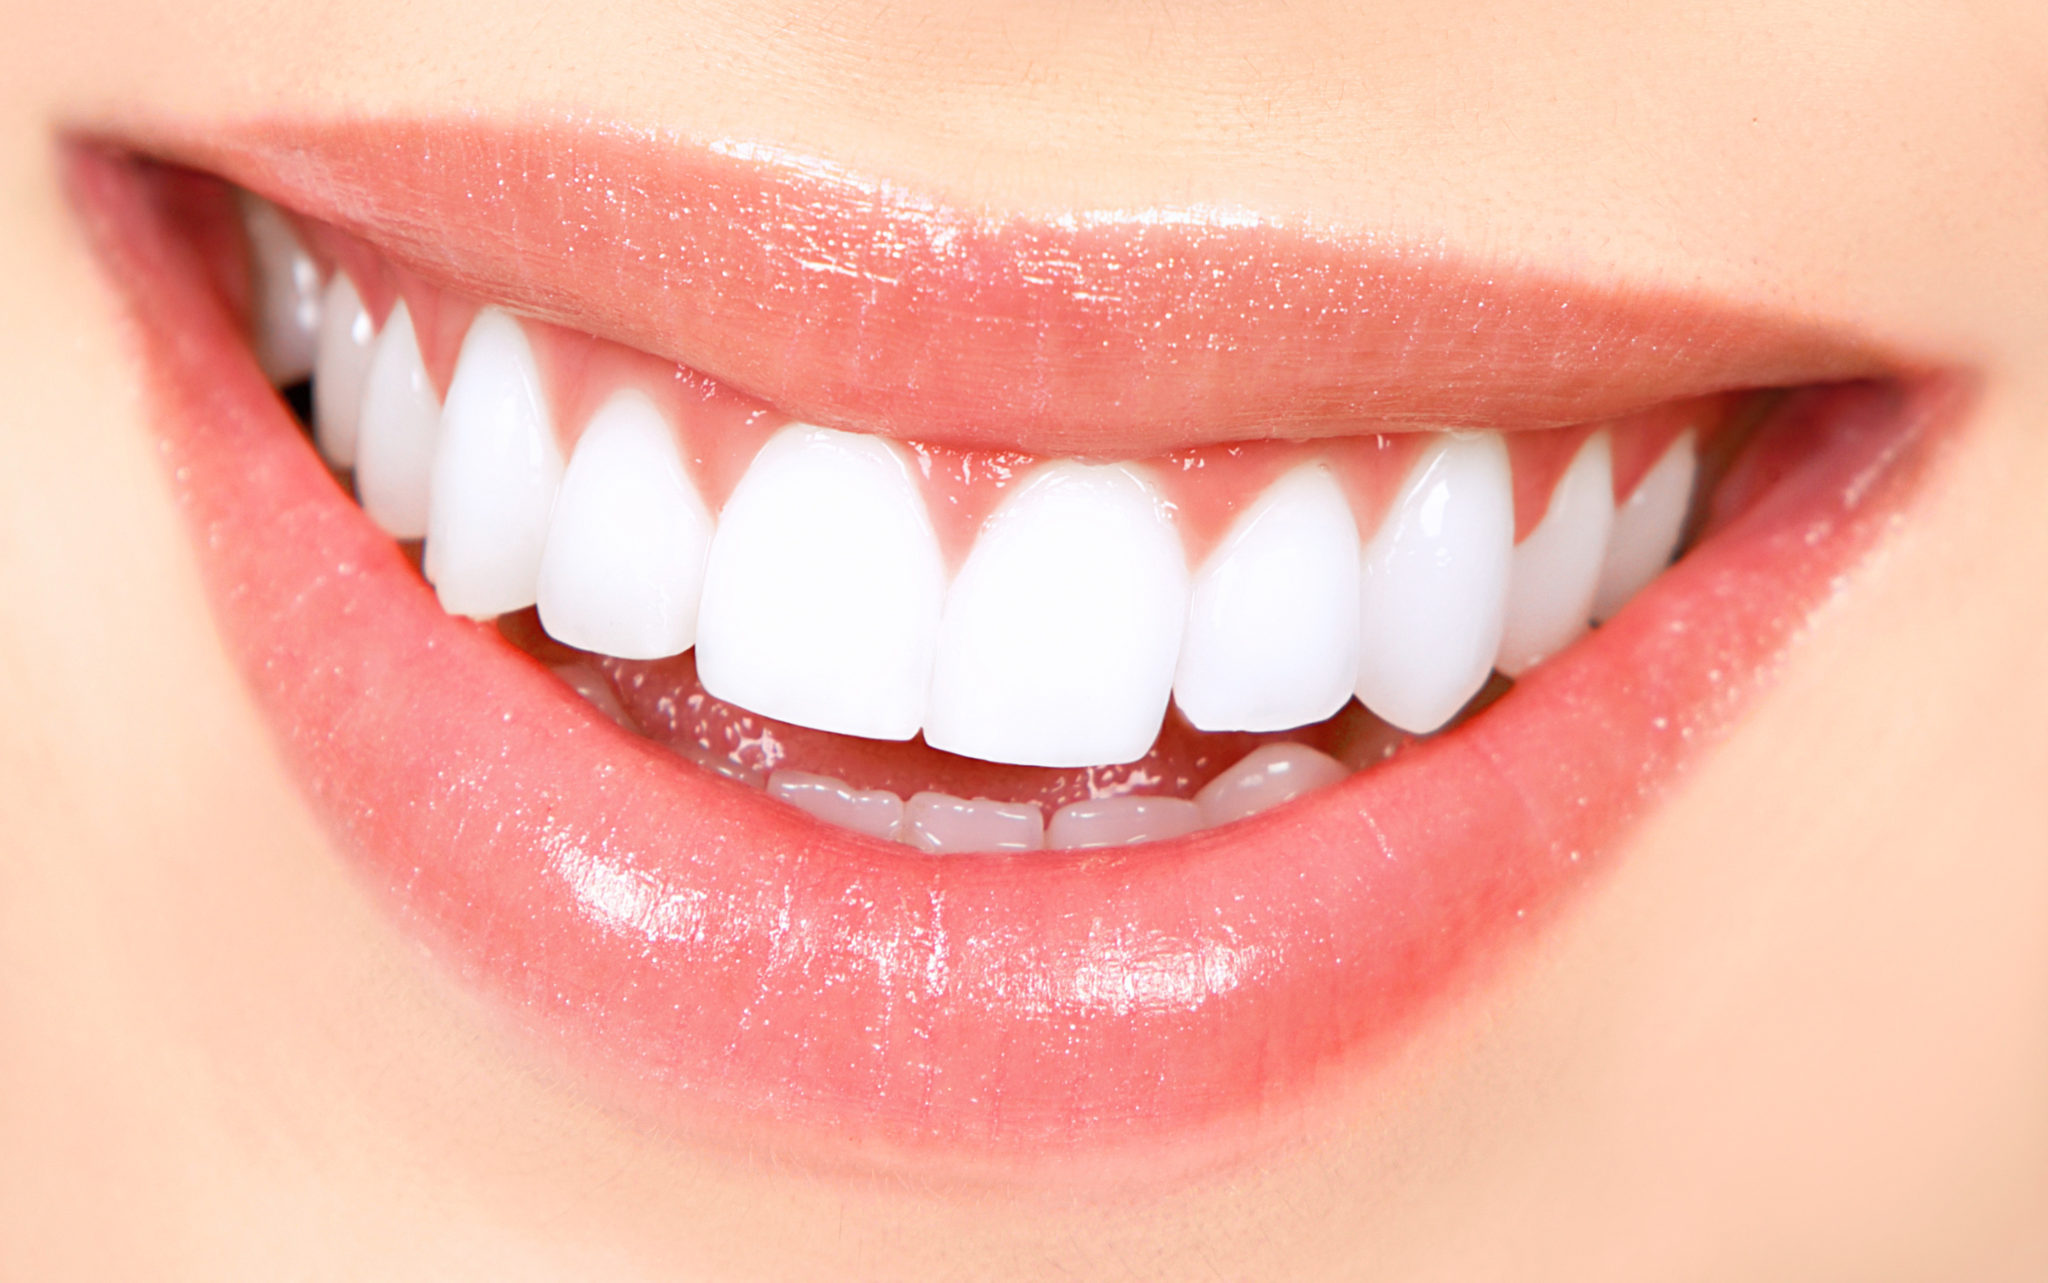 Teeth Whitening 101: What you need to know before getting a treatment